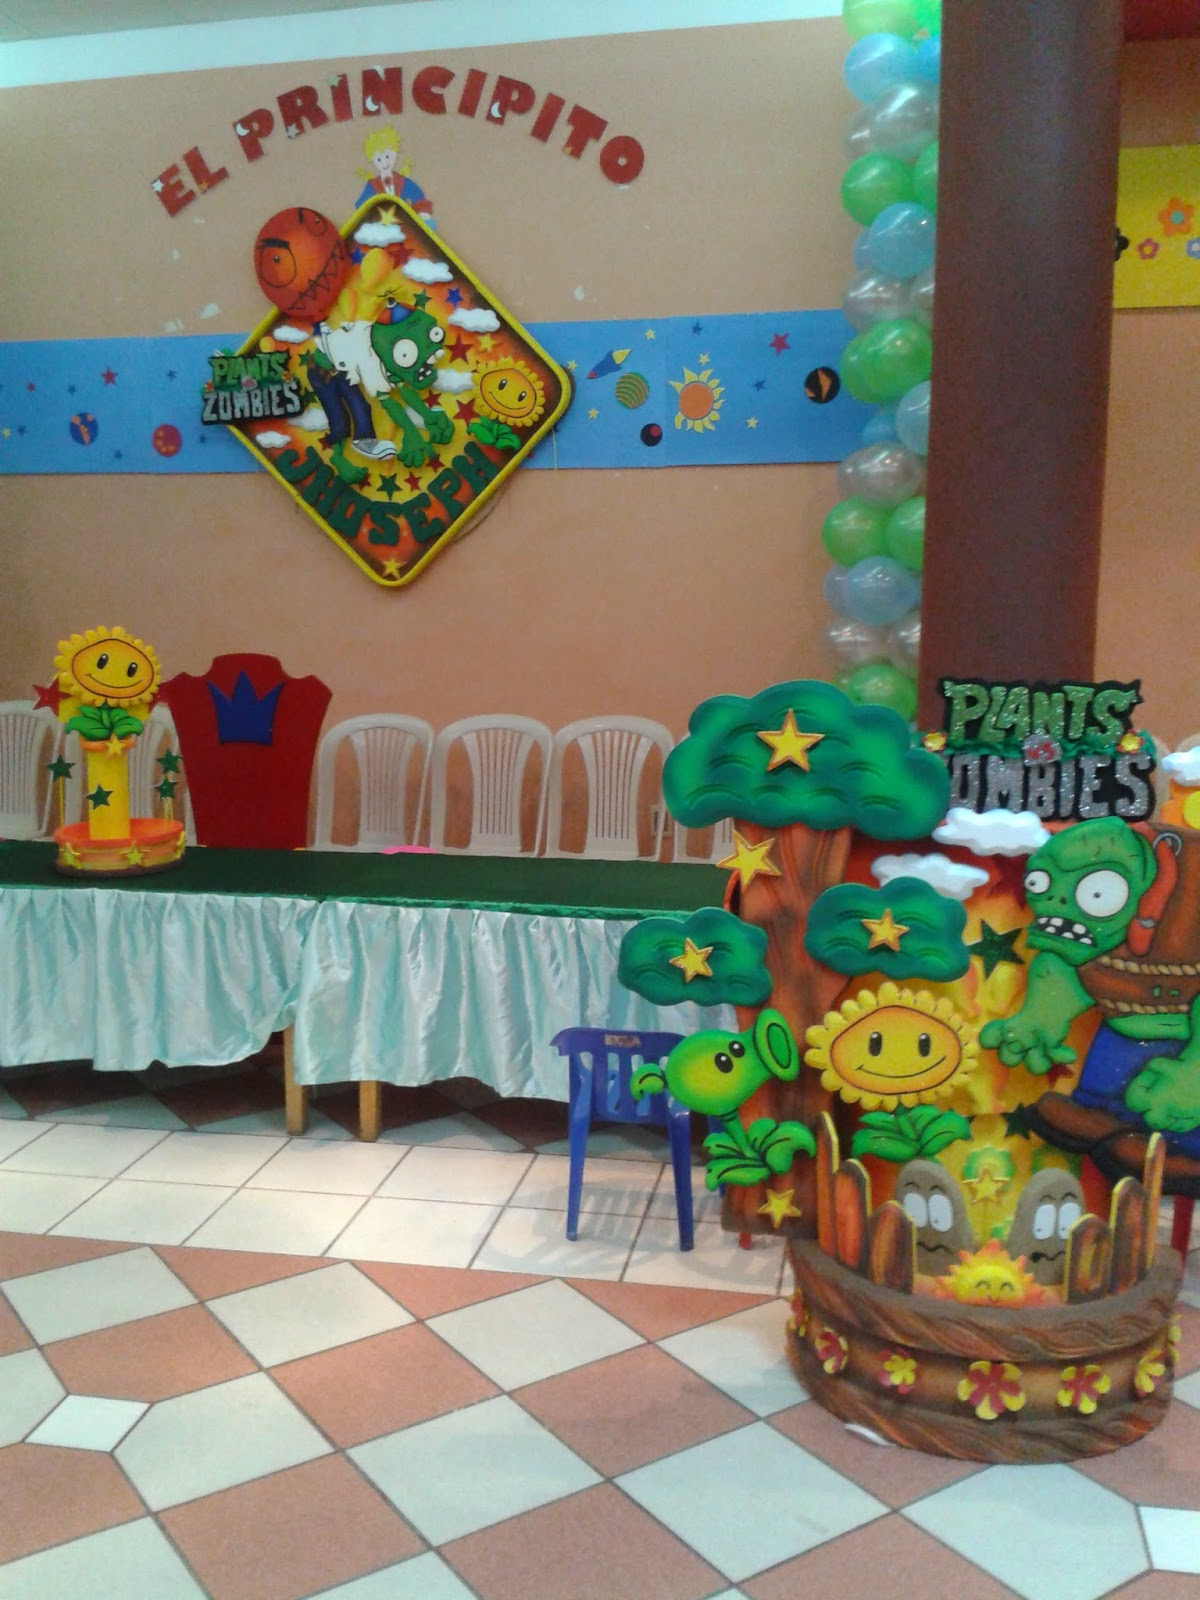 el principito decoracion plantas vs zombies